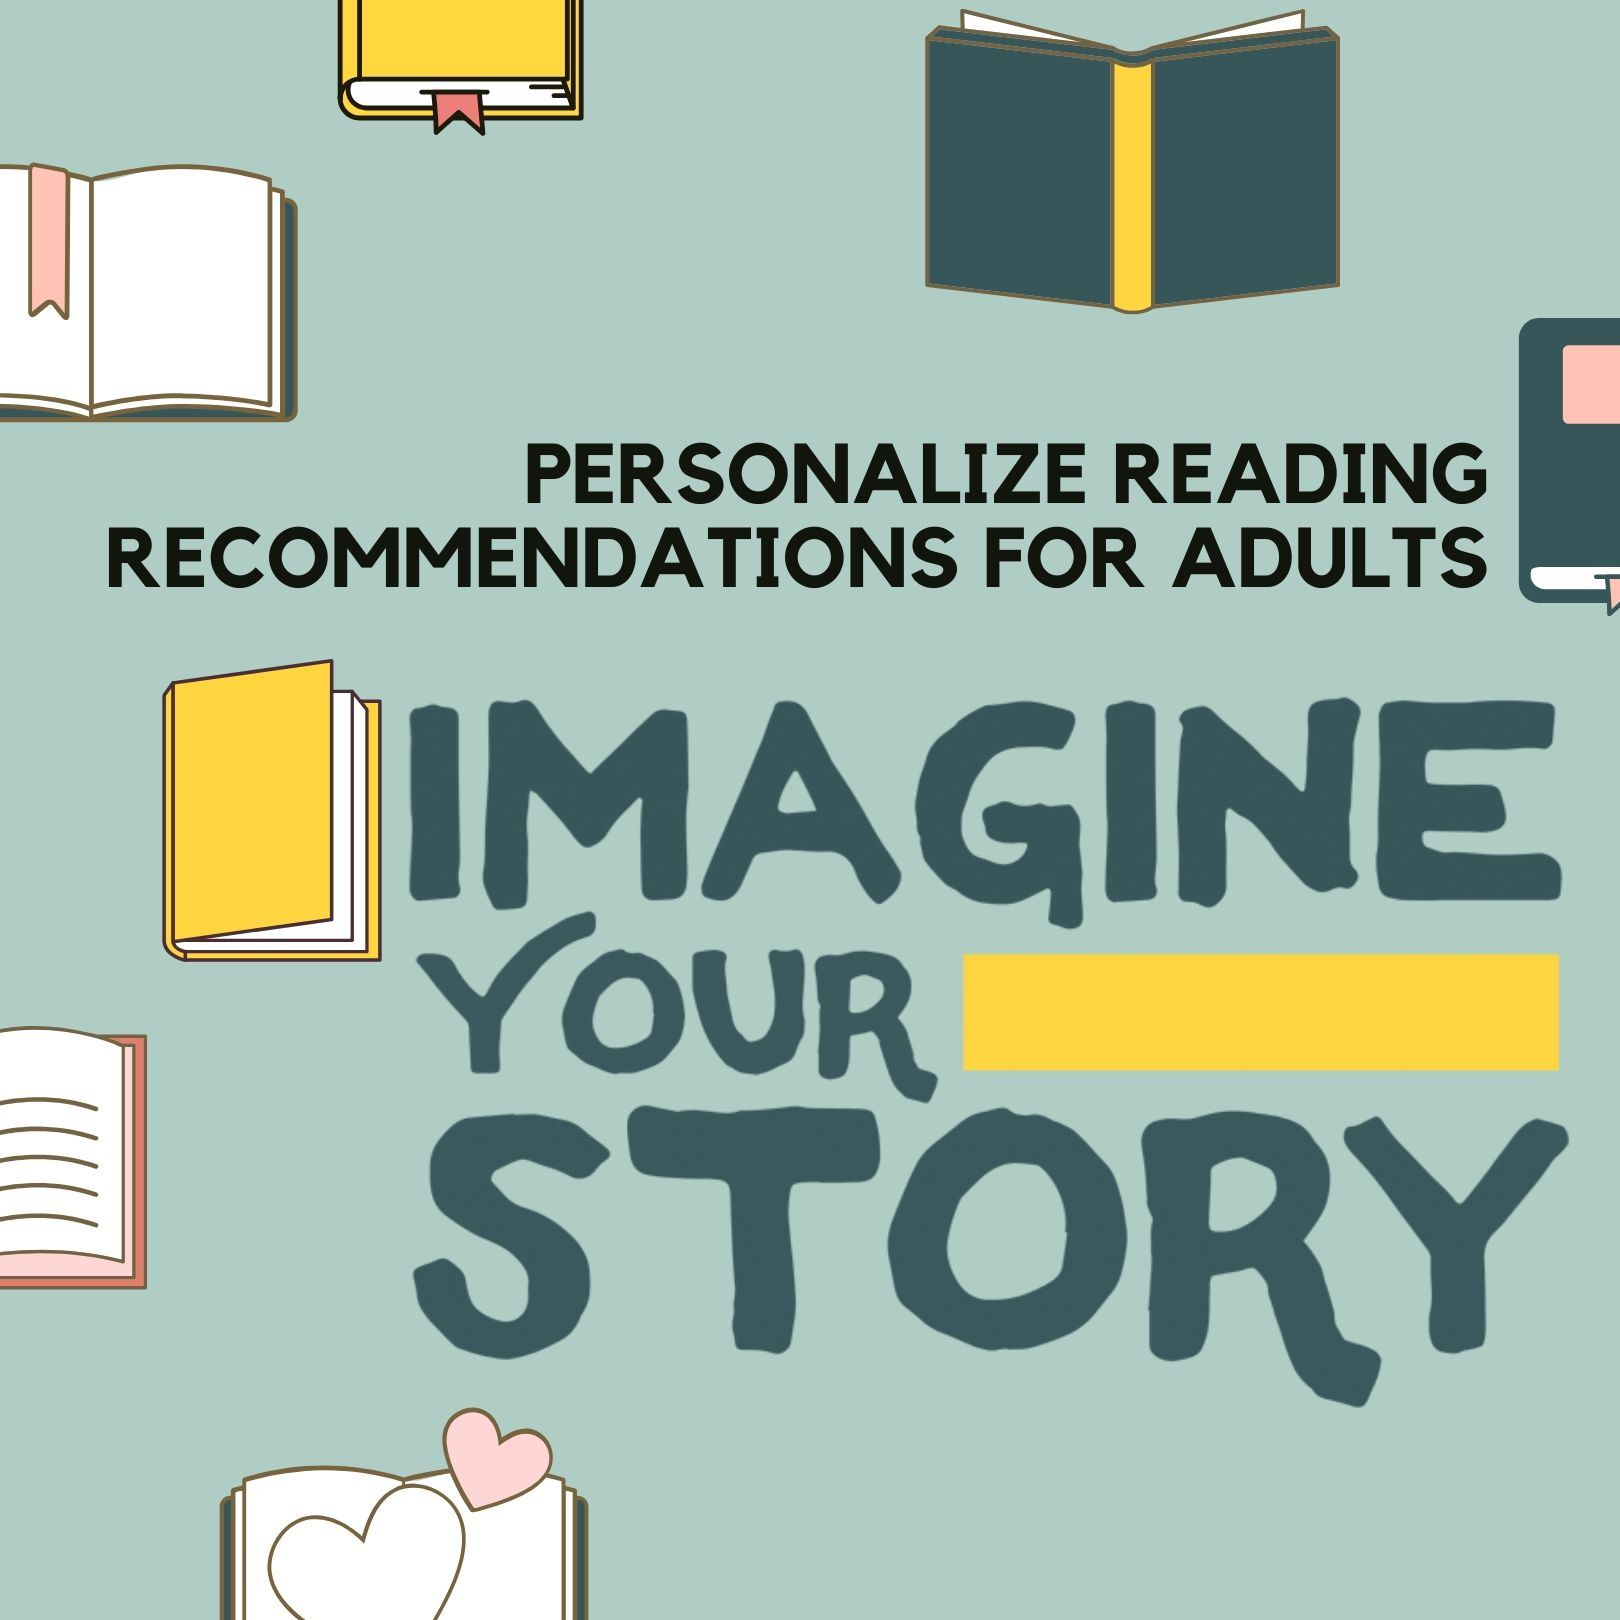 Personalize Reading Recommendations for Adults (1)